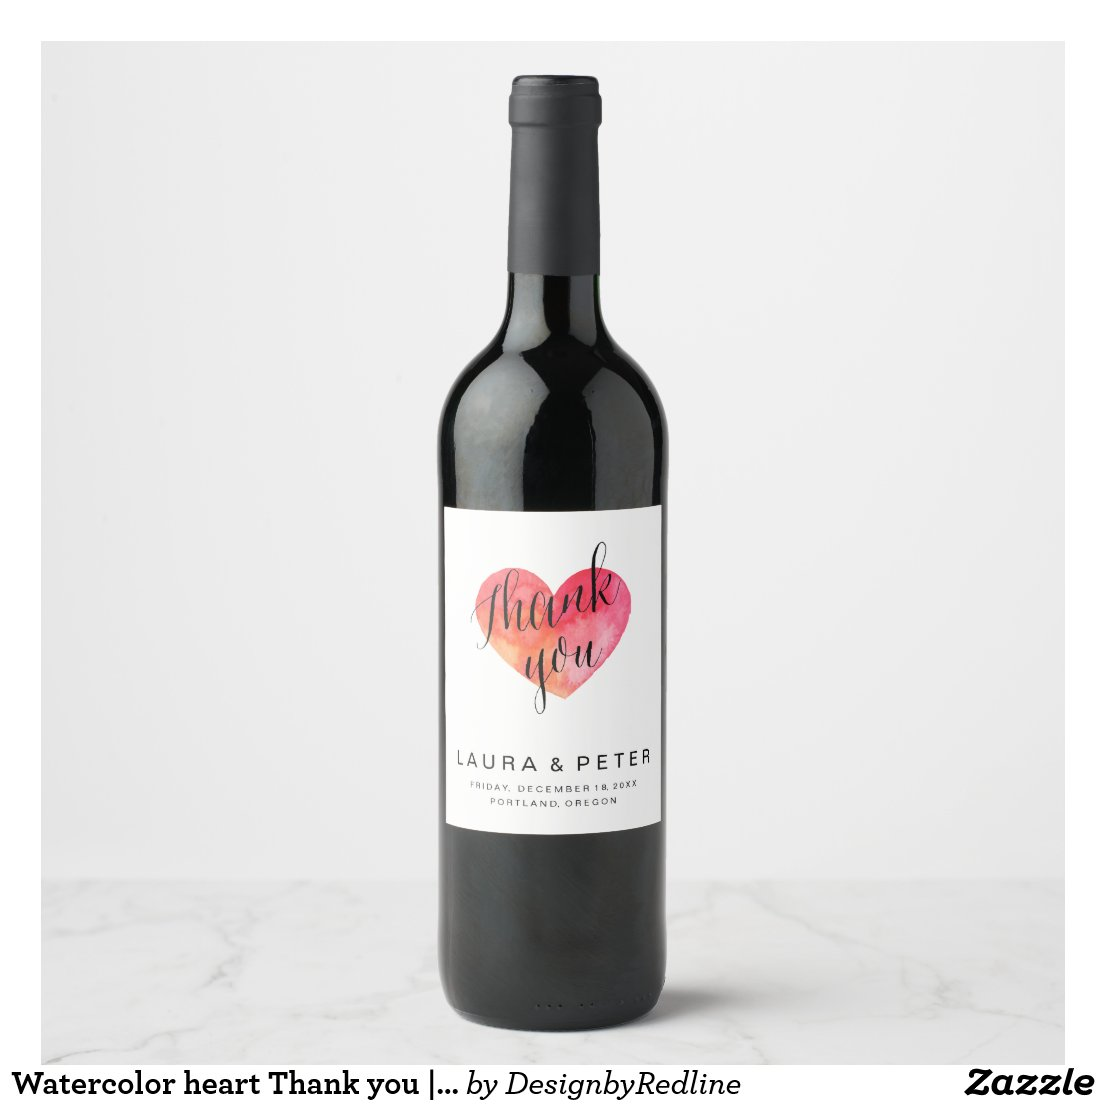 Watercolor heart Thank you wine labels